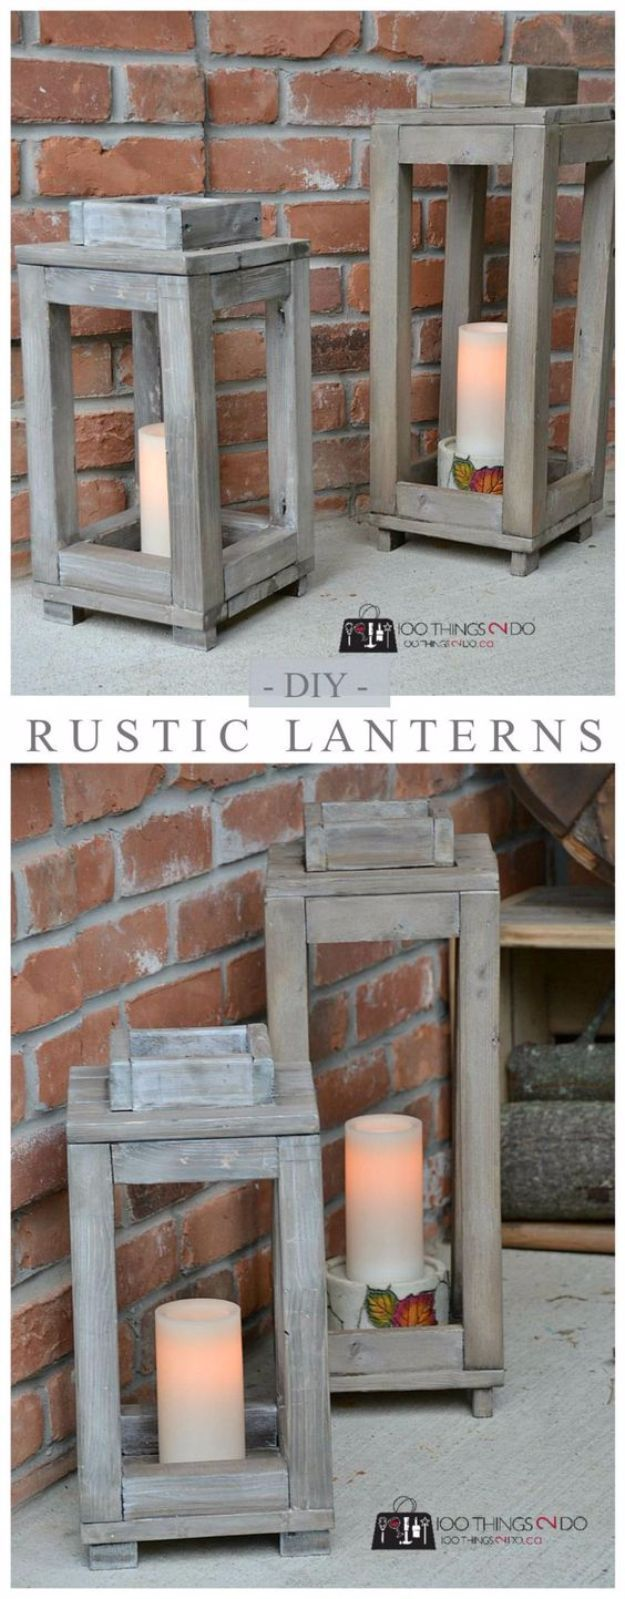 Best Country Decor Ideas for Your Porch - DIY Wood Lanterns - Rustic Farmhouse Decor Tutorials and Easy Vintage Shabby Chic Home Decor for Kitchen, Living Room and Bathroom - Creative Country Crafts, Furniture, Patio Decor and Rustic Wall Art and Accessories to Make and Sell http://diyjoy.com/country-decor-ideas-porchs